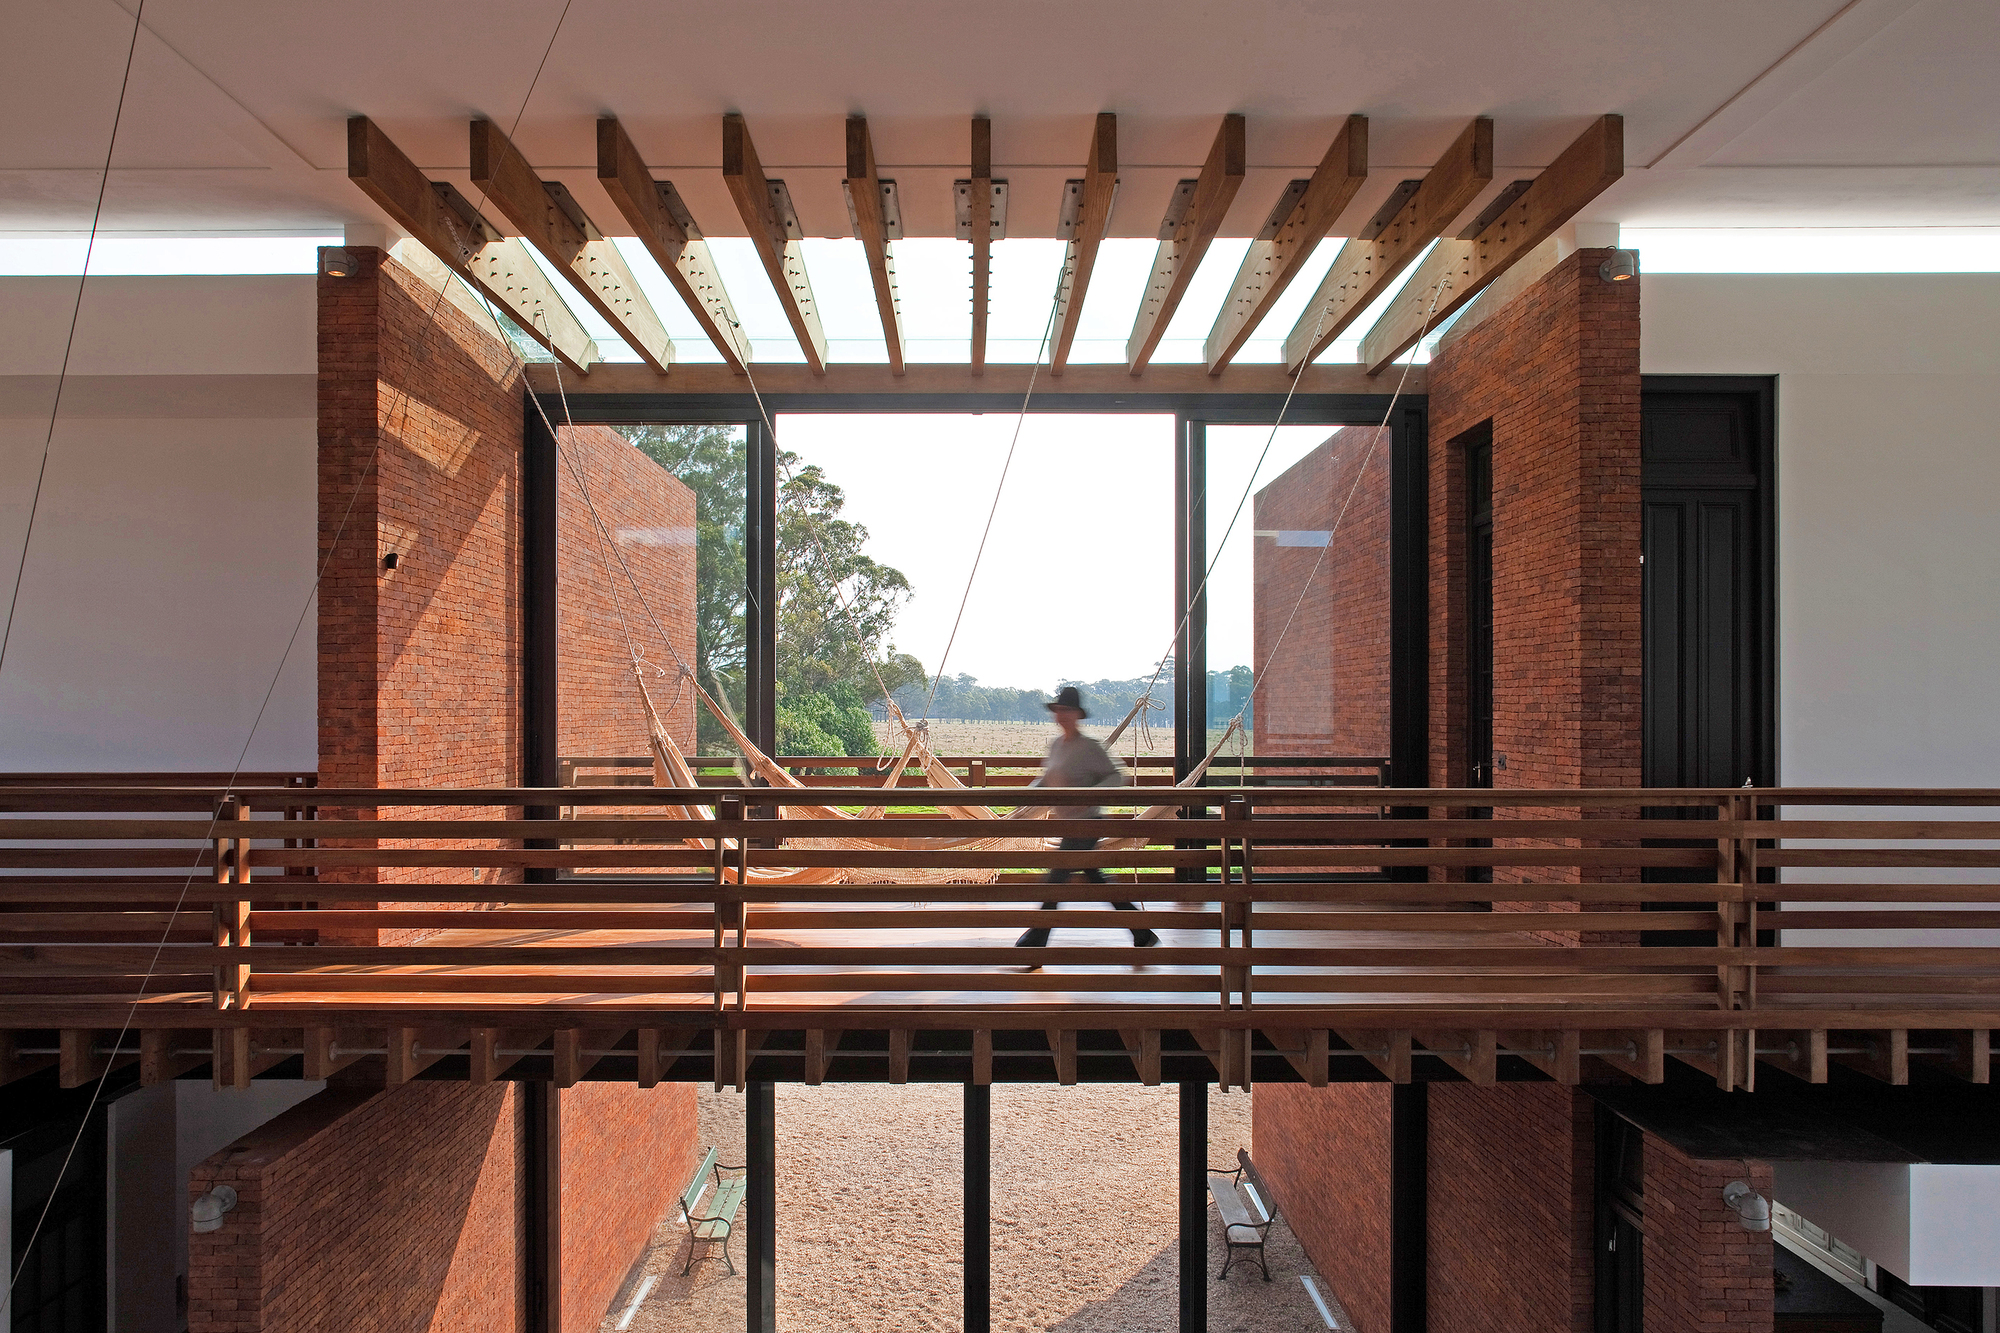 Luna llena house candida tabet arquitetura archdaily - Residence secondaire candida tabet architecture ...